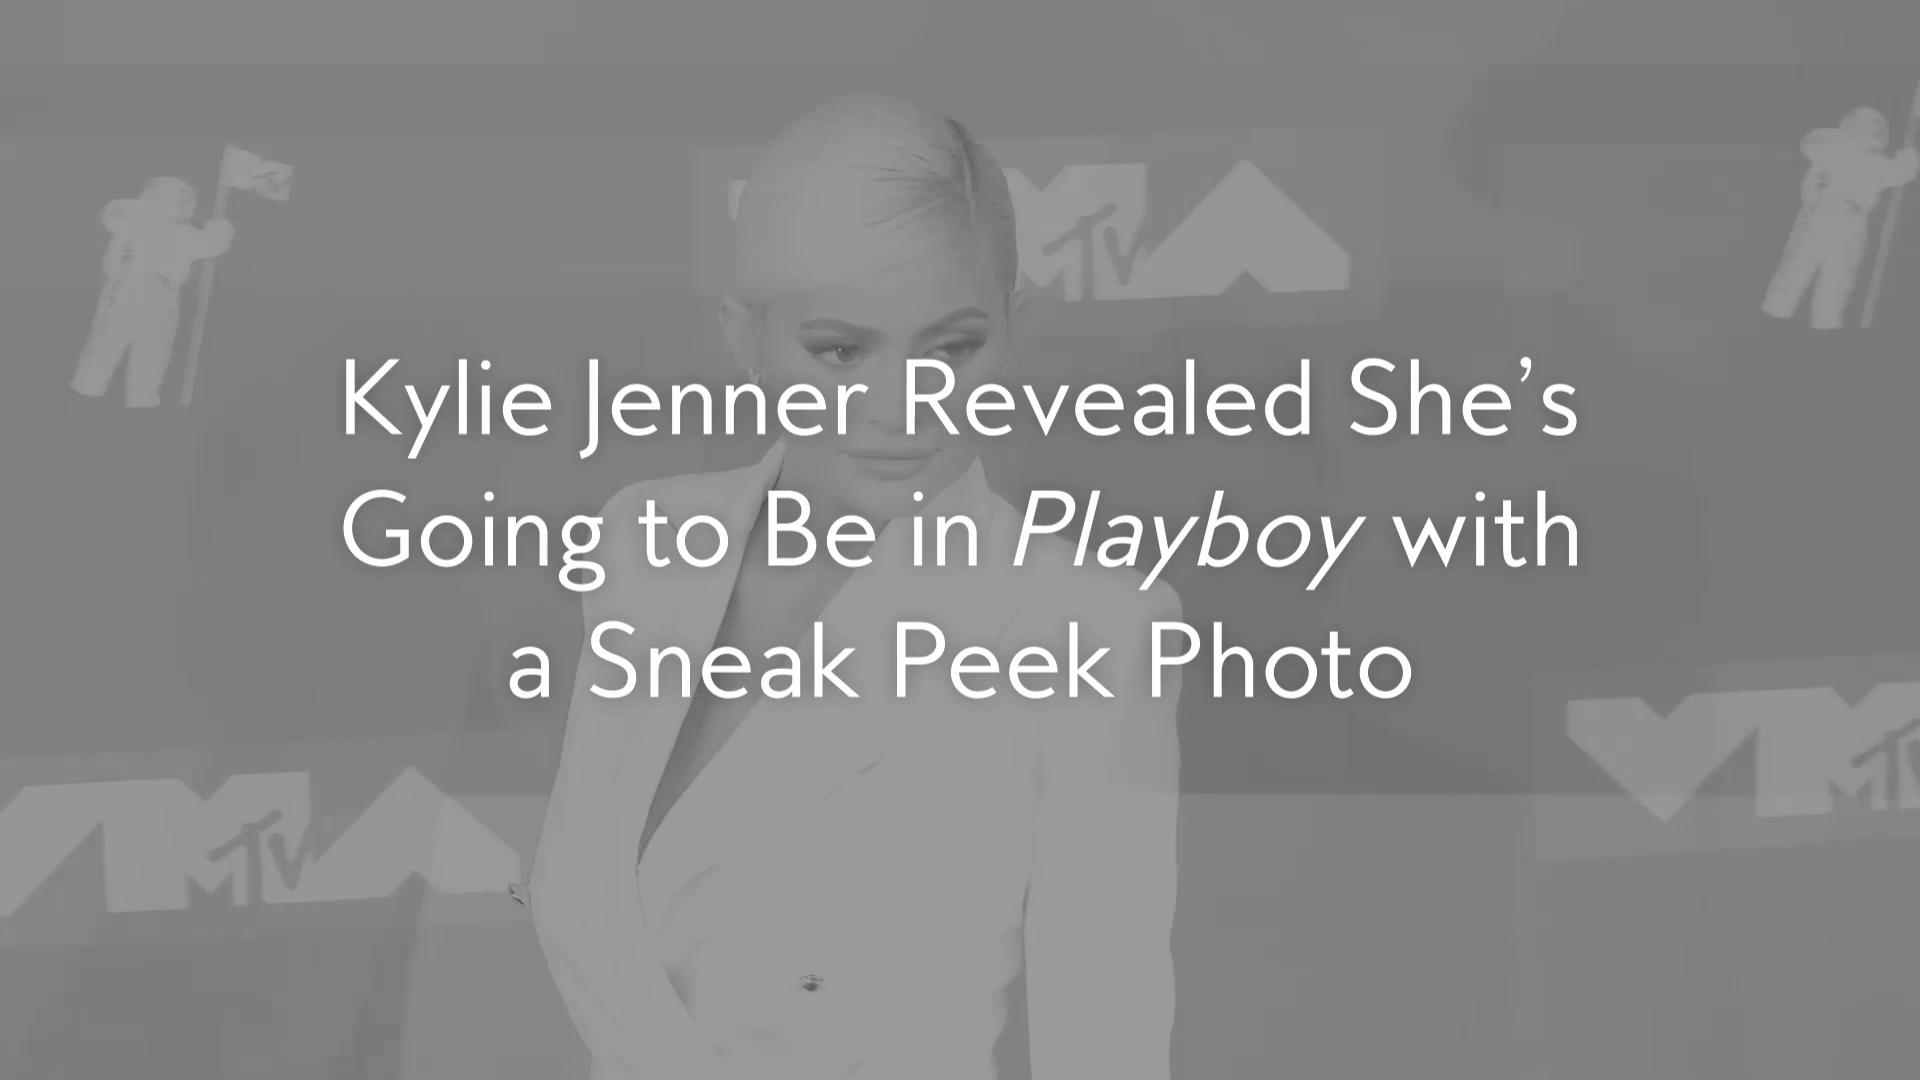 Kylie Jenner Revealed She's Going to Be in Playboy with a Sneak Peek Photo